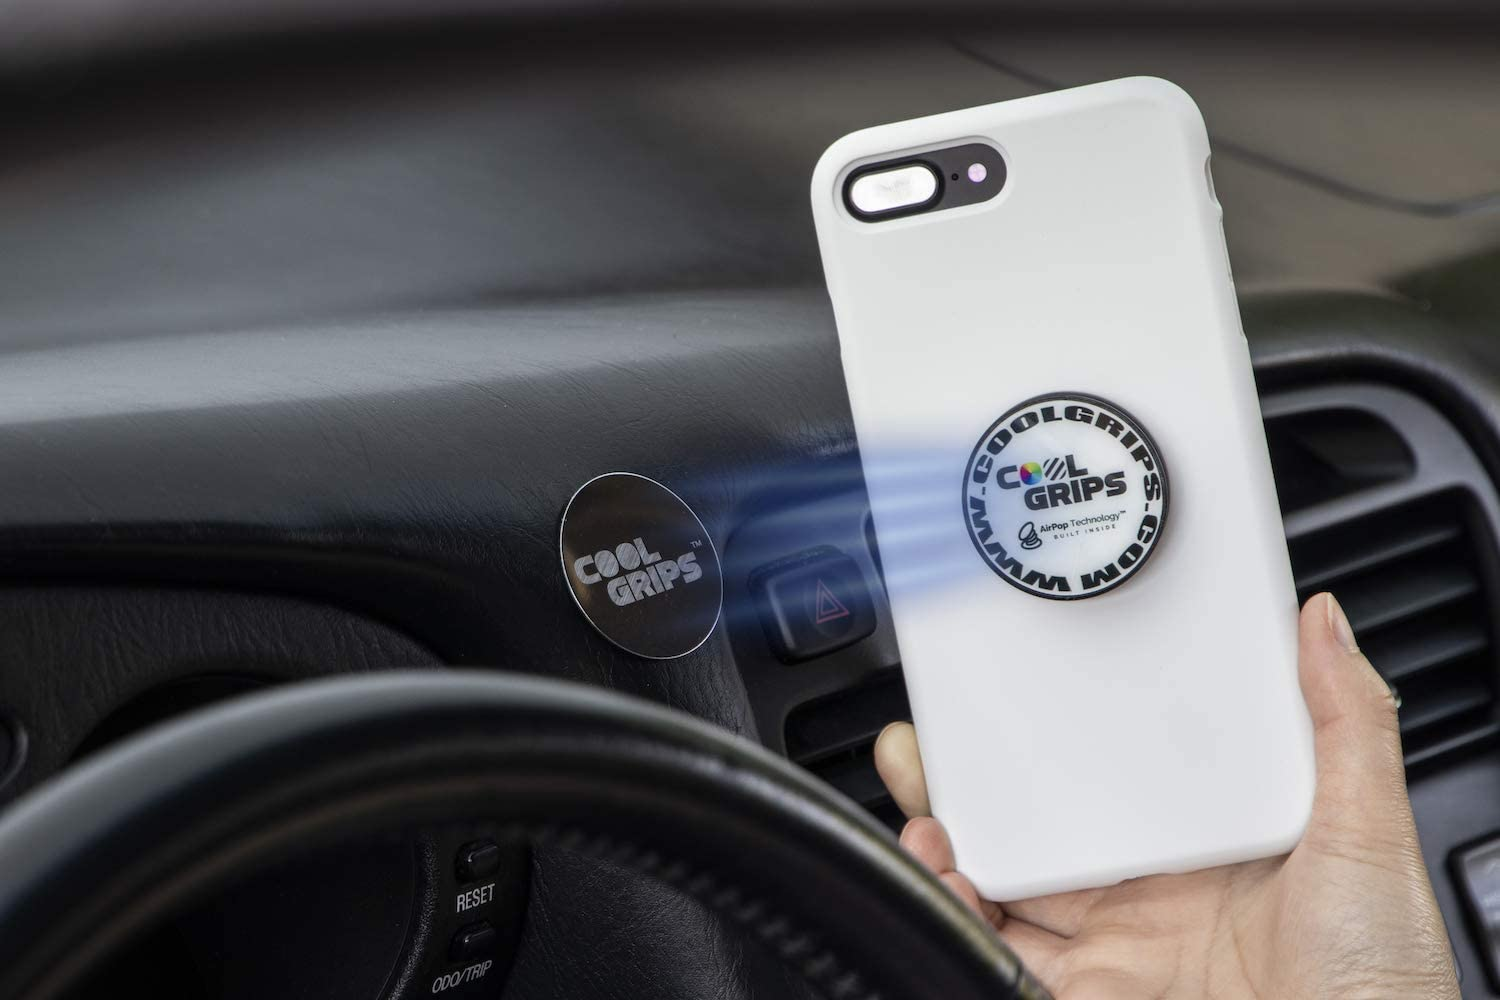 Cool Grips with Airpop Technology Magnet top Collapsible Phone Grip Holder and Stand City Nights